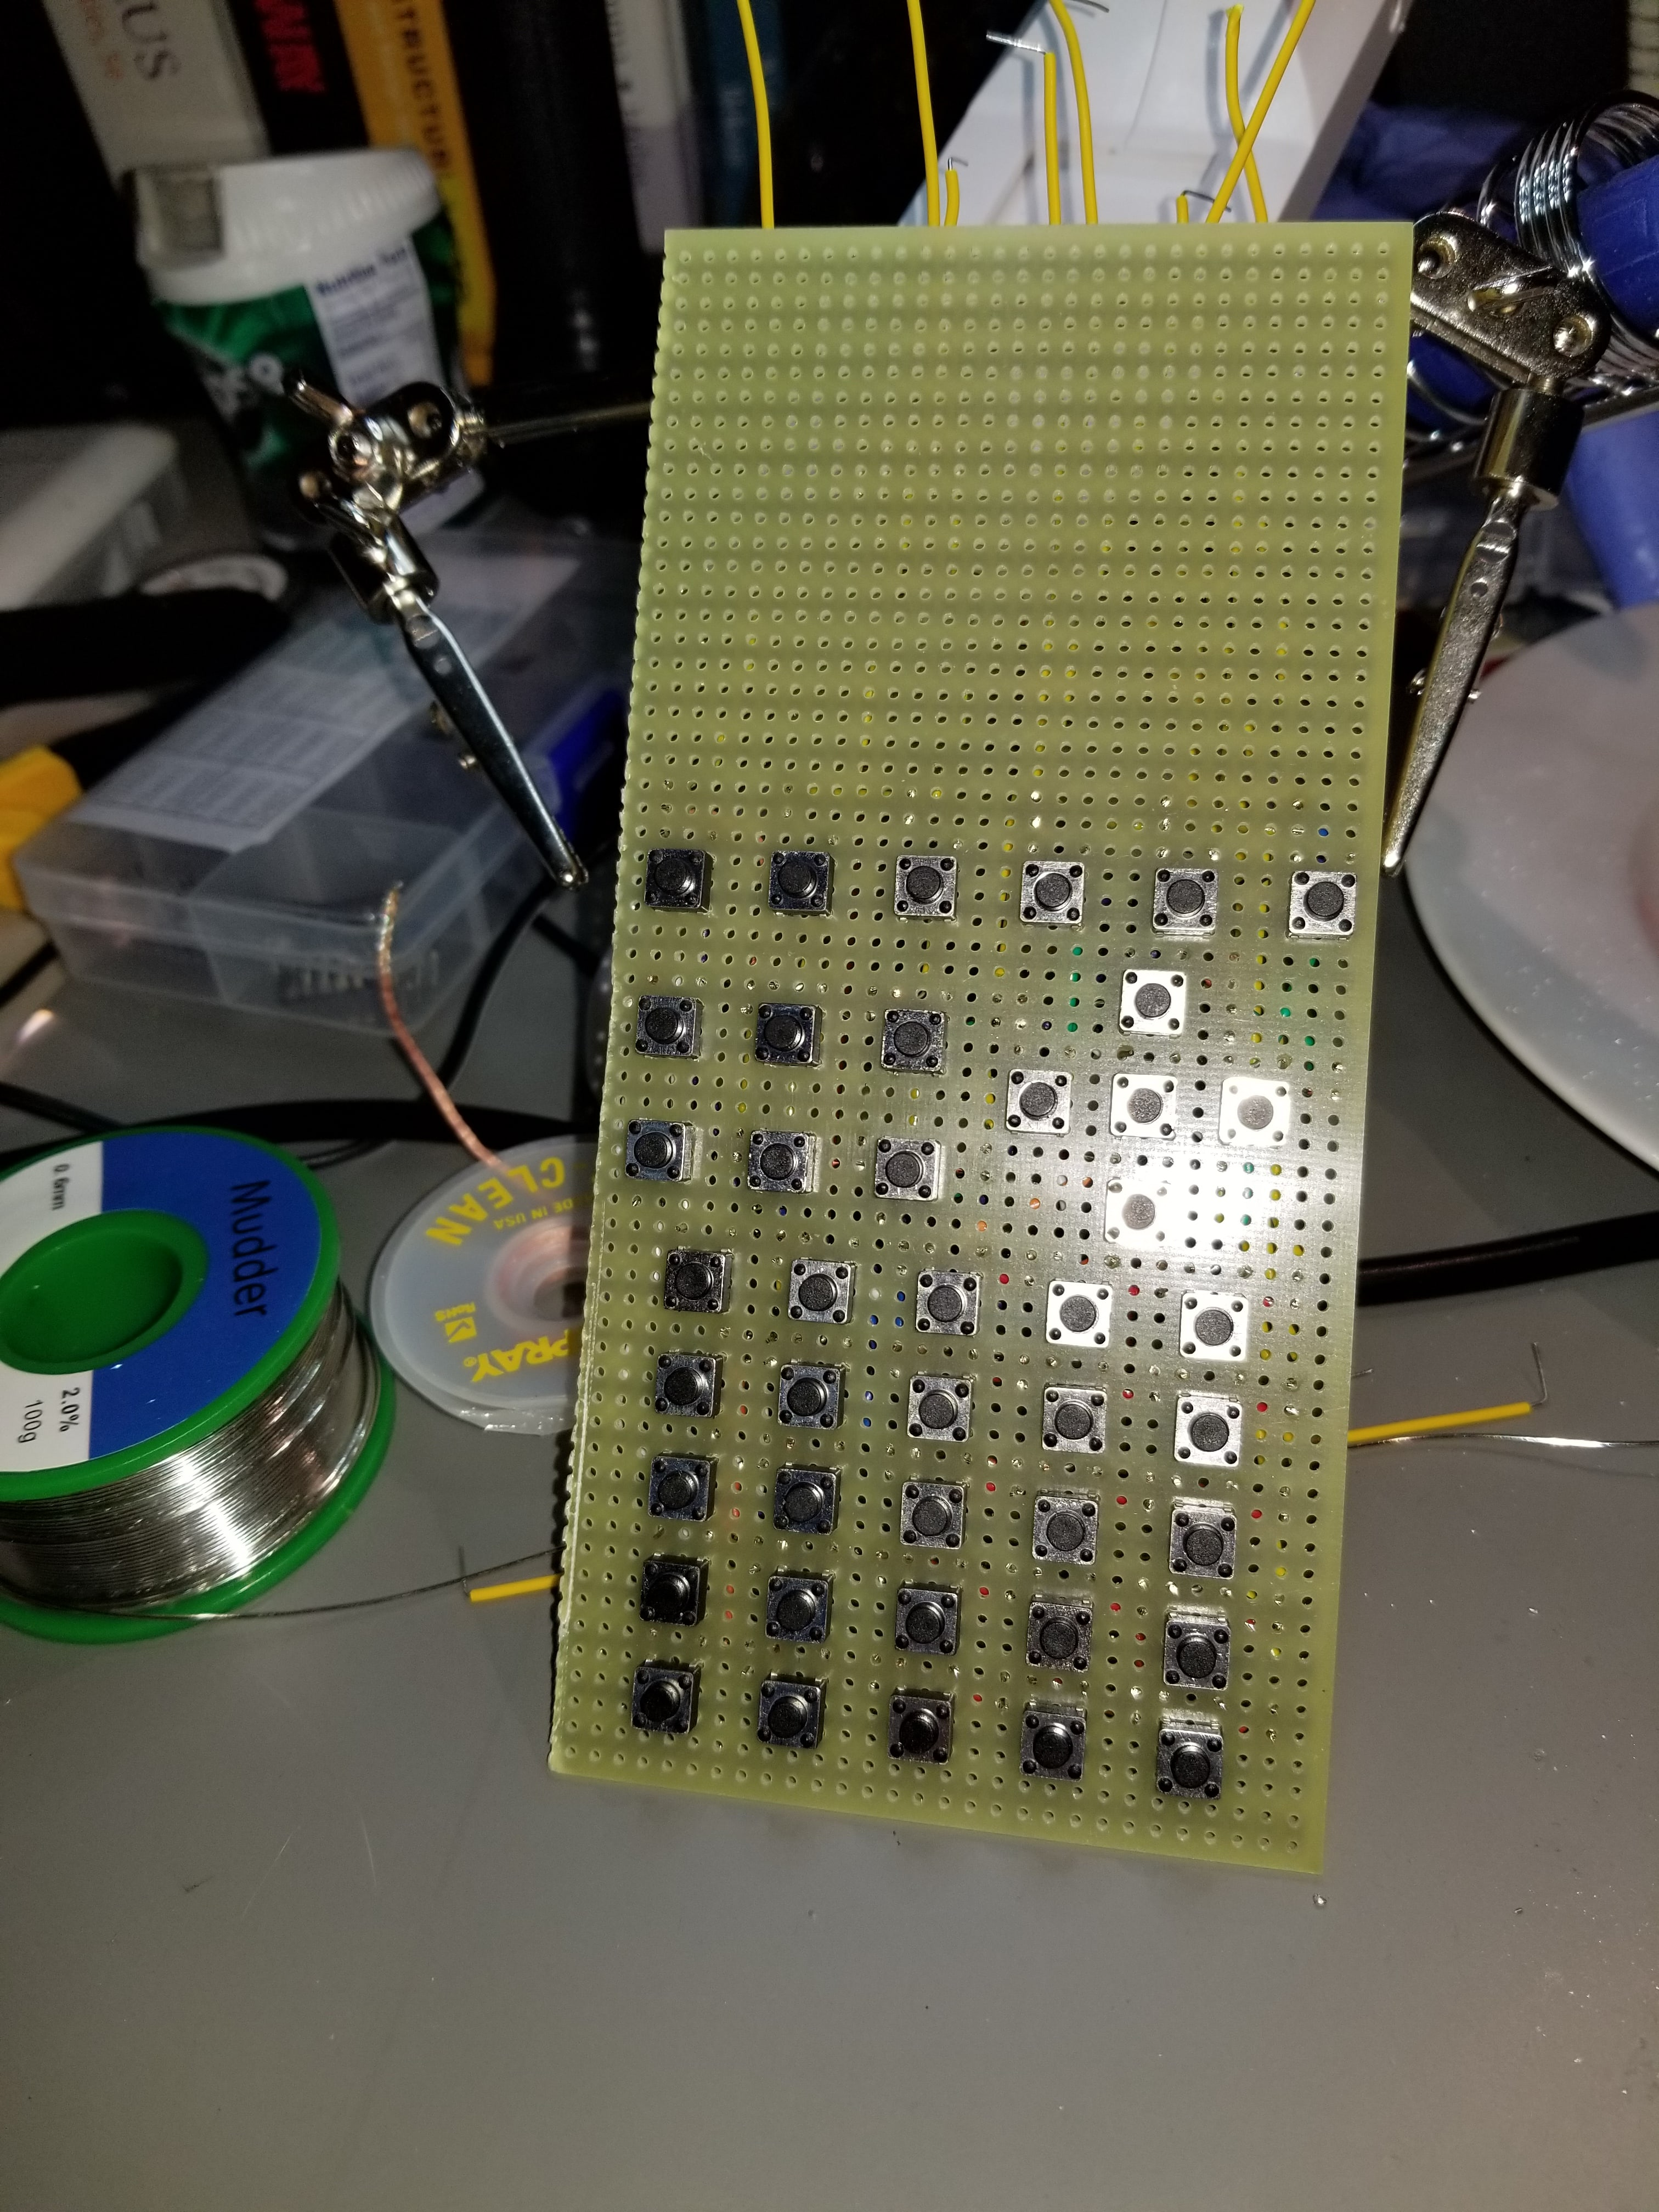 42 Key Keypad On 5 Wires Complete Parallax Forums First Step Into Programming Propeller 20171128 235448 Min